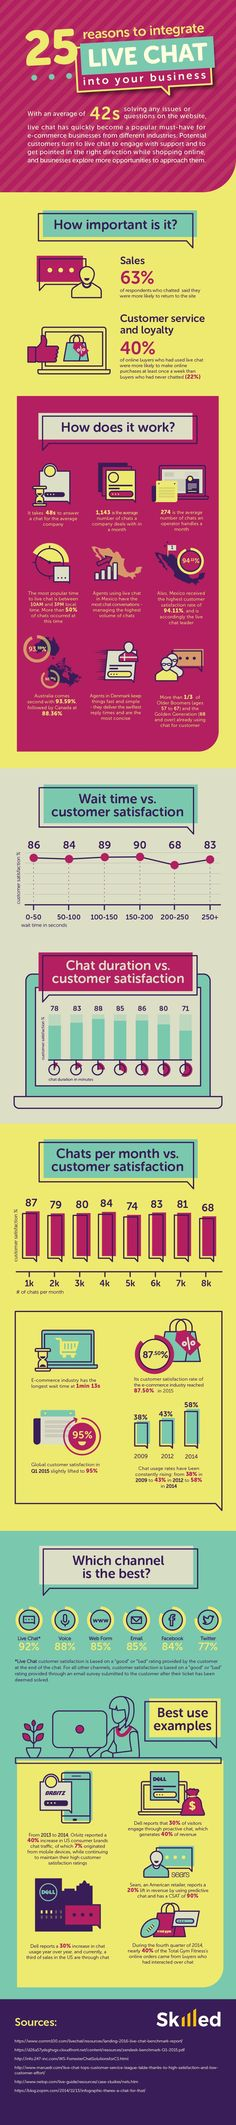 25 Reasons to Integrate Live Chat into Your Business Website [Infographic]   Social Media Today